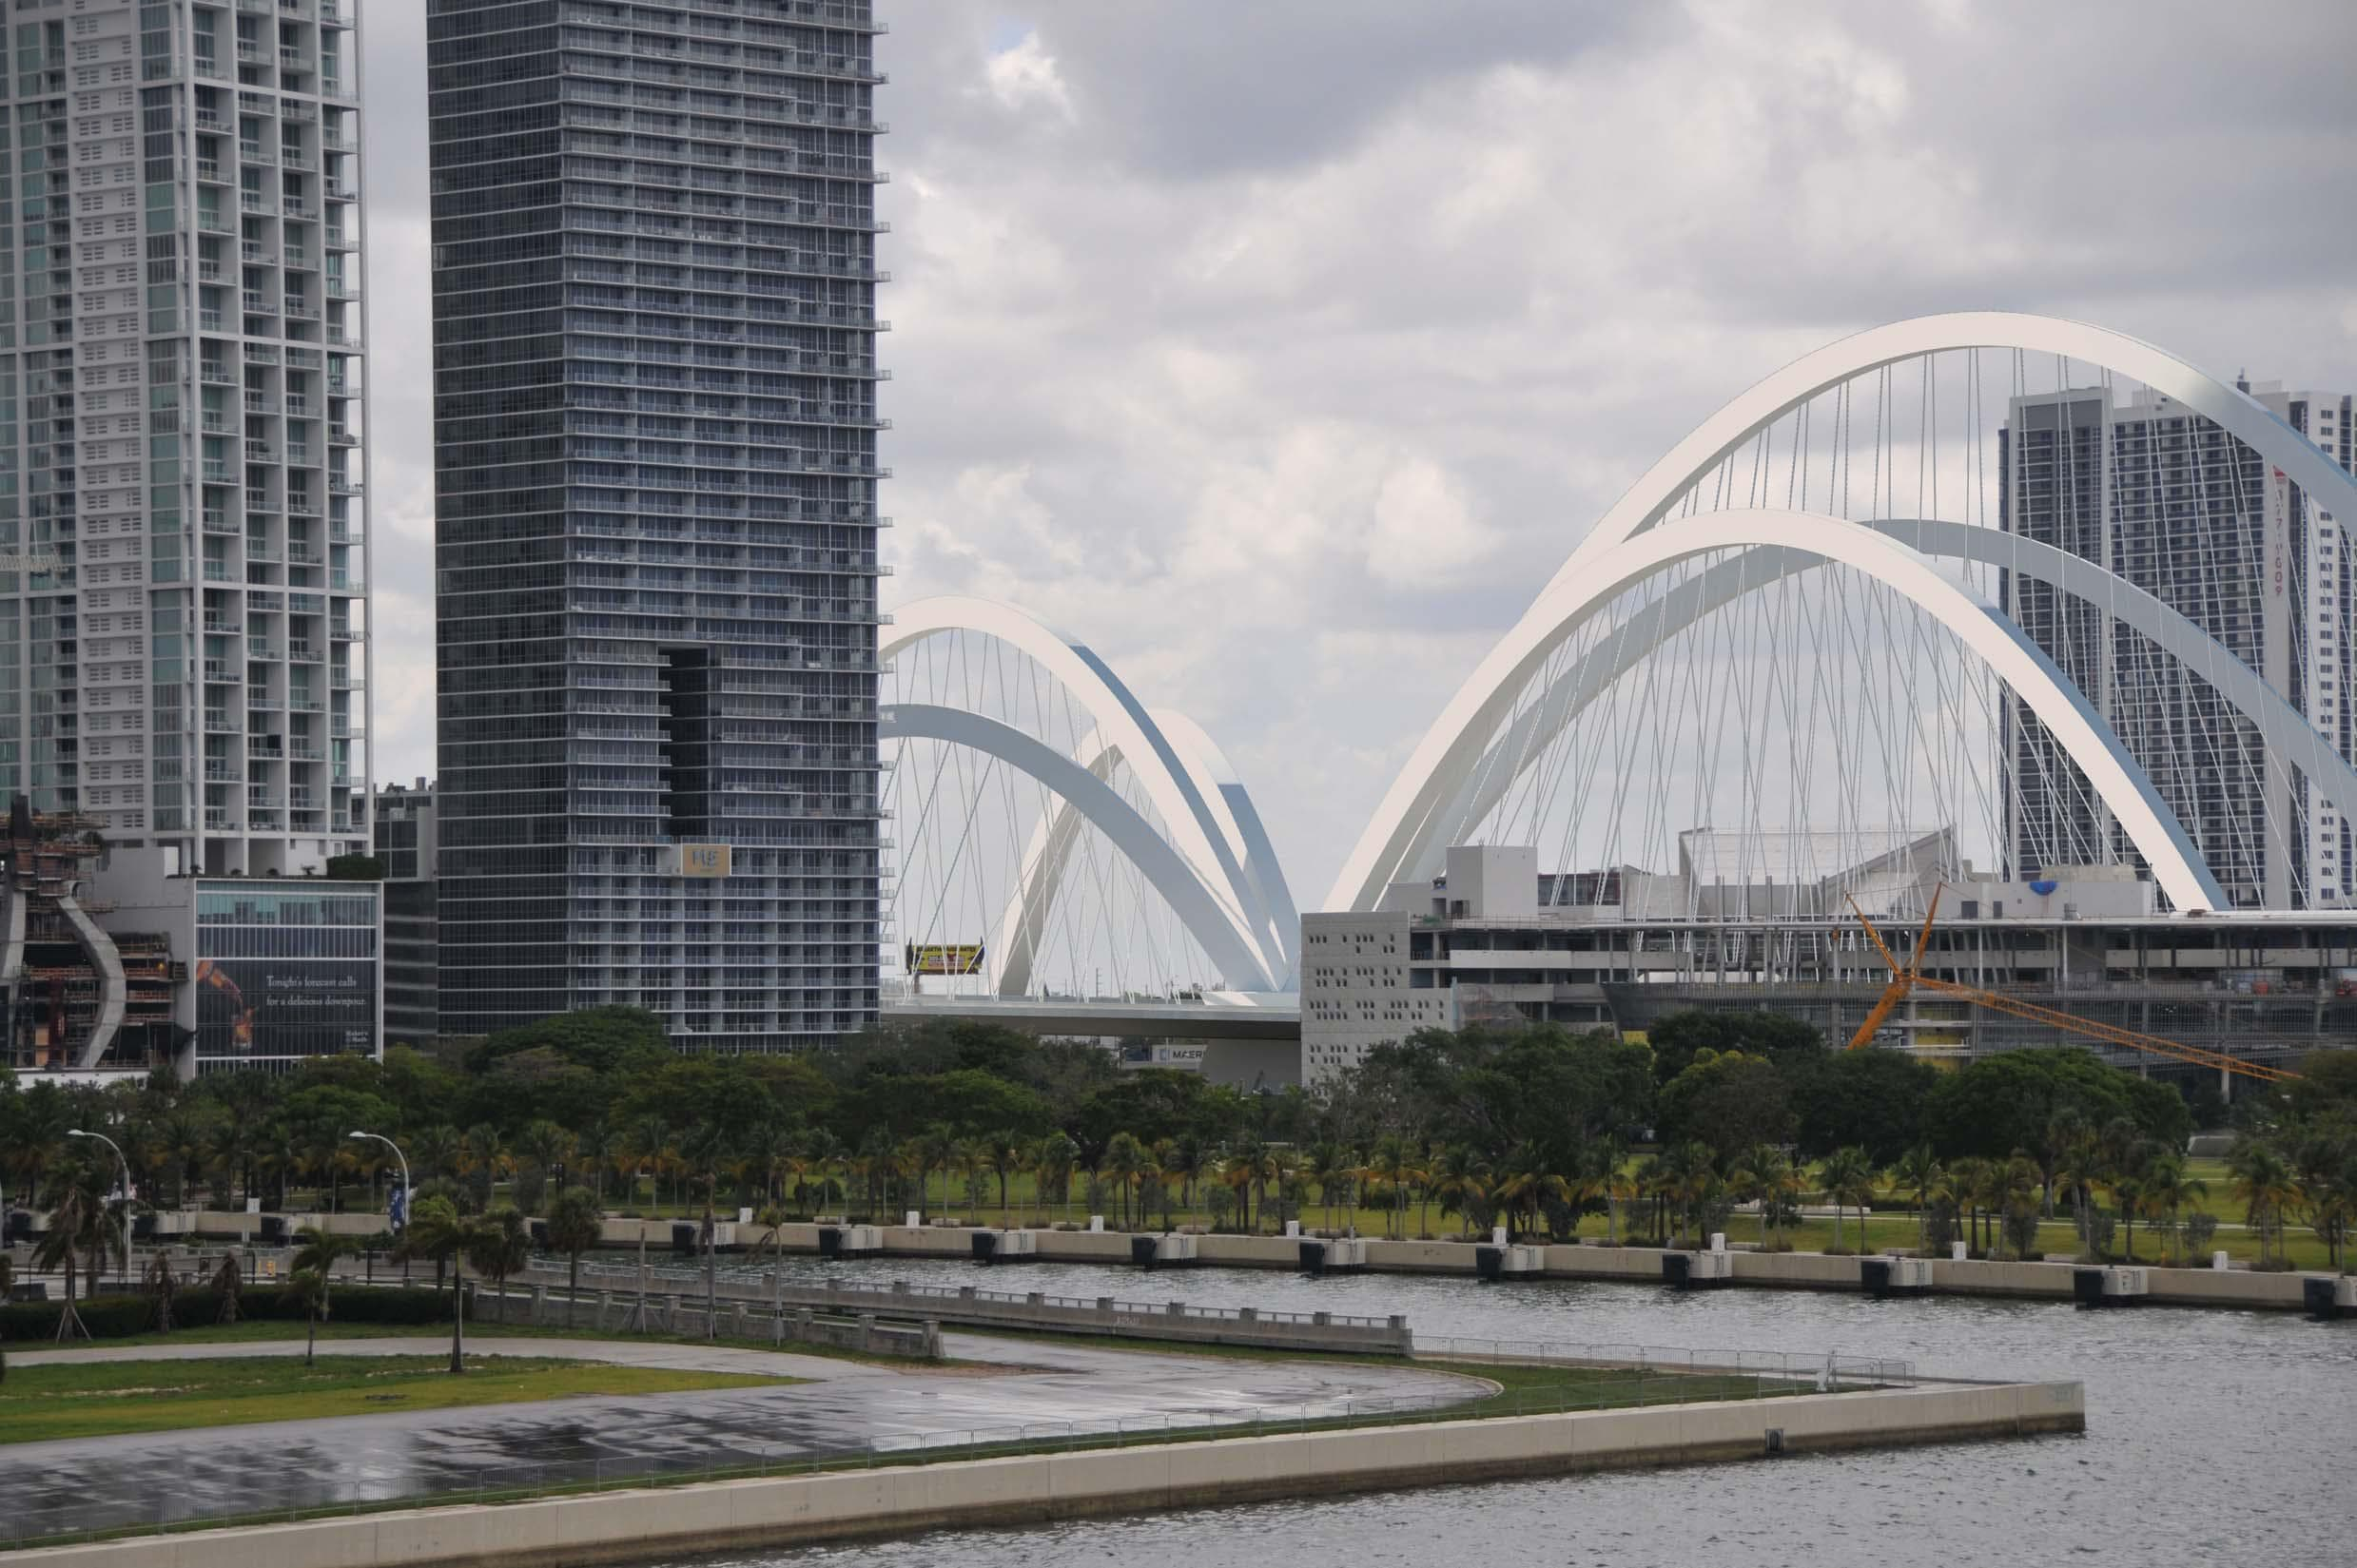 Downtown Miami's $800 Million Signature Bridge Awarded Notice To Proceed By FDOT